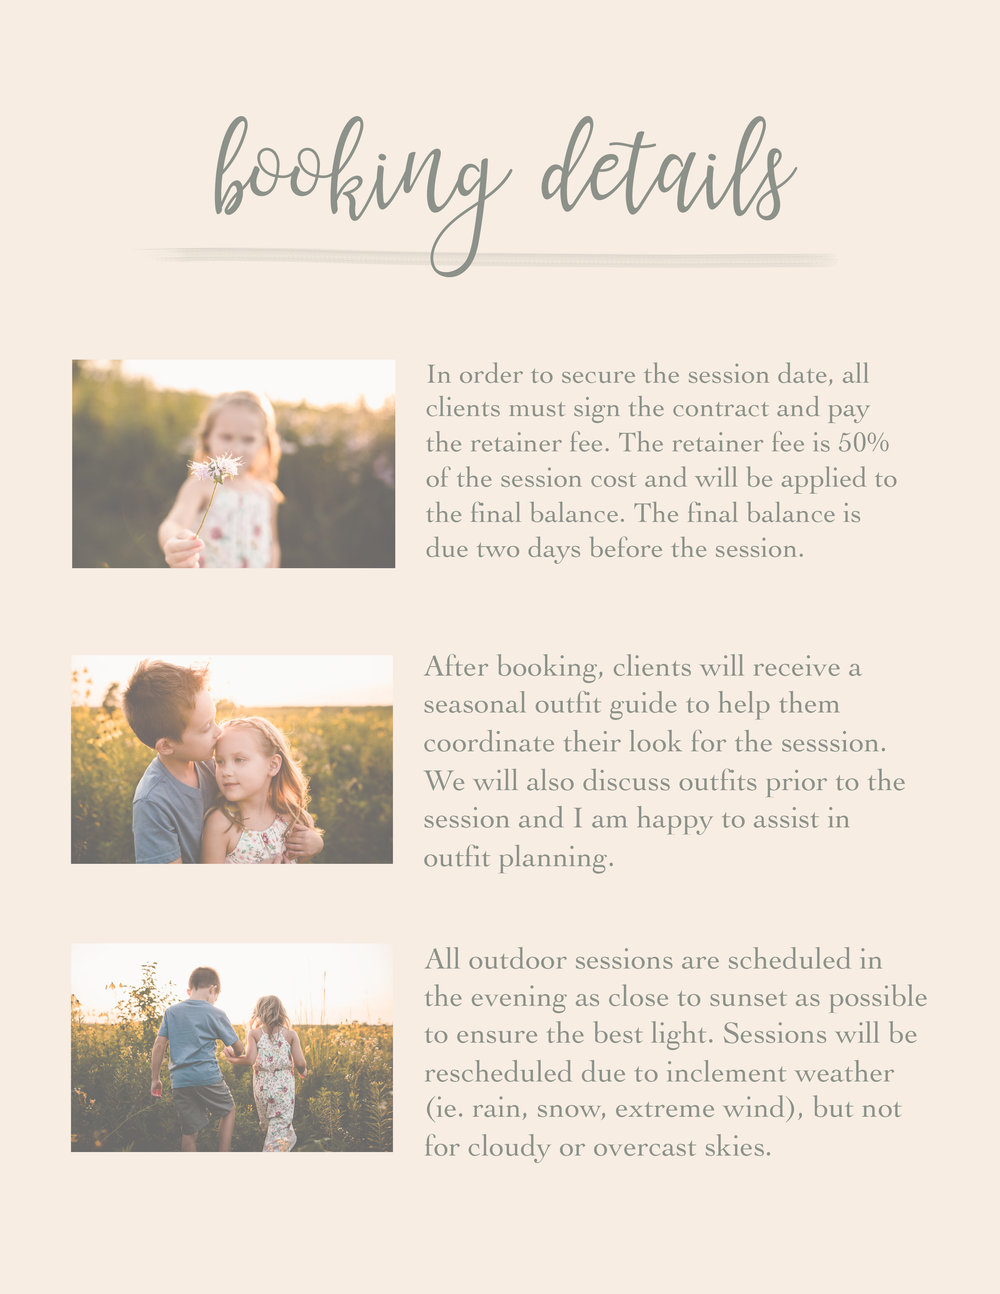 Child And Family Portrait Guide Template For Photographers Earthy Style Ally B Photography Naperville Newborn Photographer Naperville Family Photographer Naperville Child Photographer